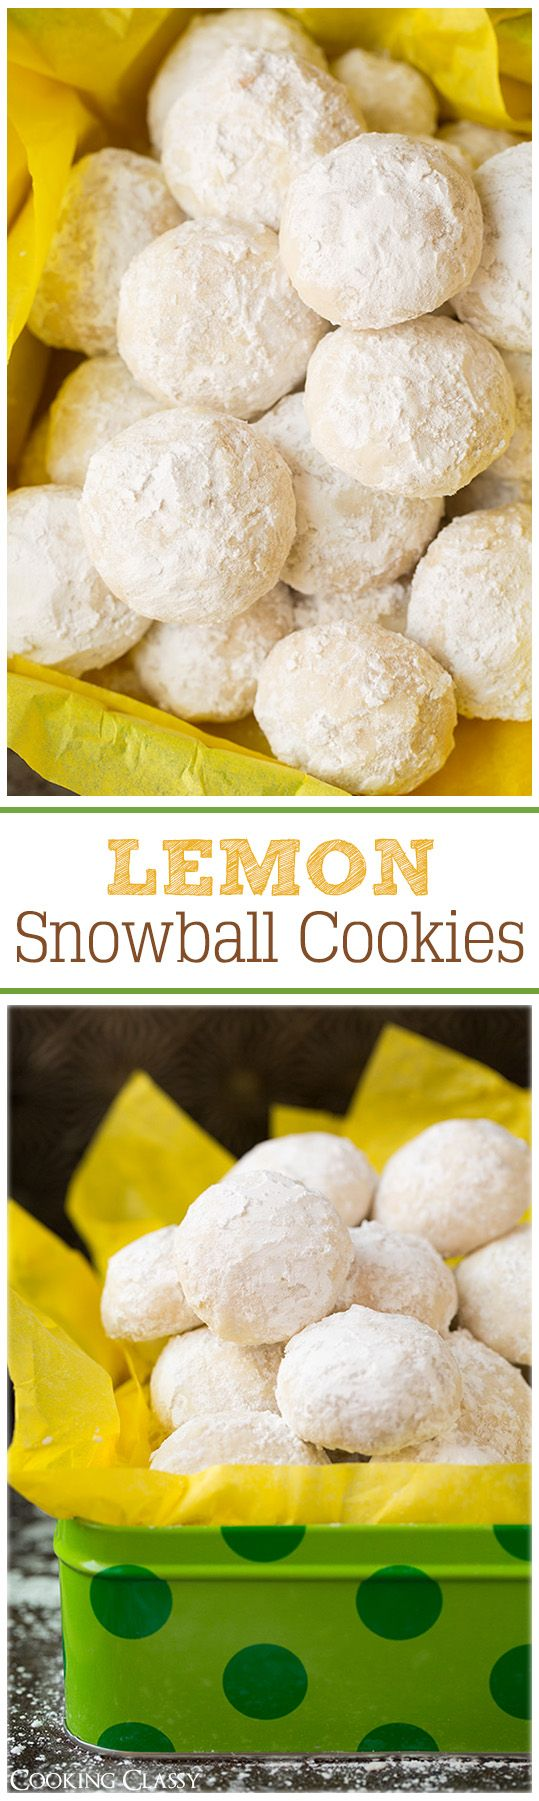 Lemon Snowball Cookies - these cookies are so IRRESISTIBLE! Love them!